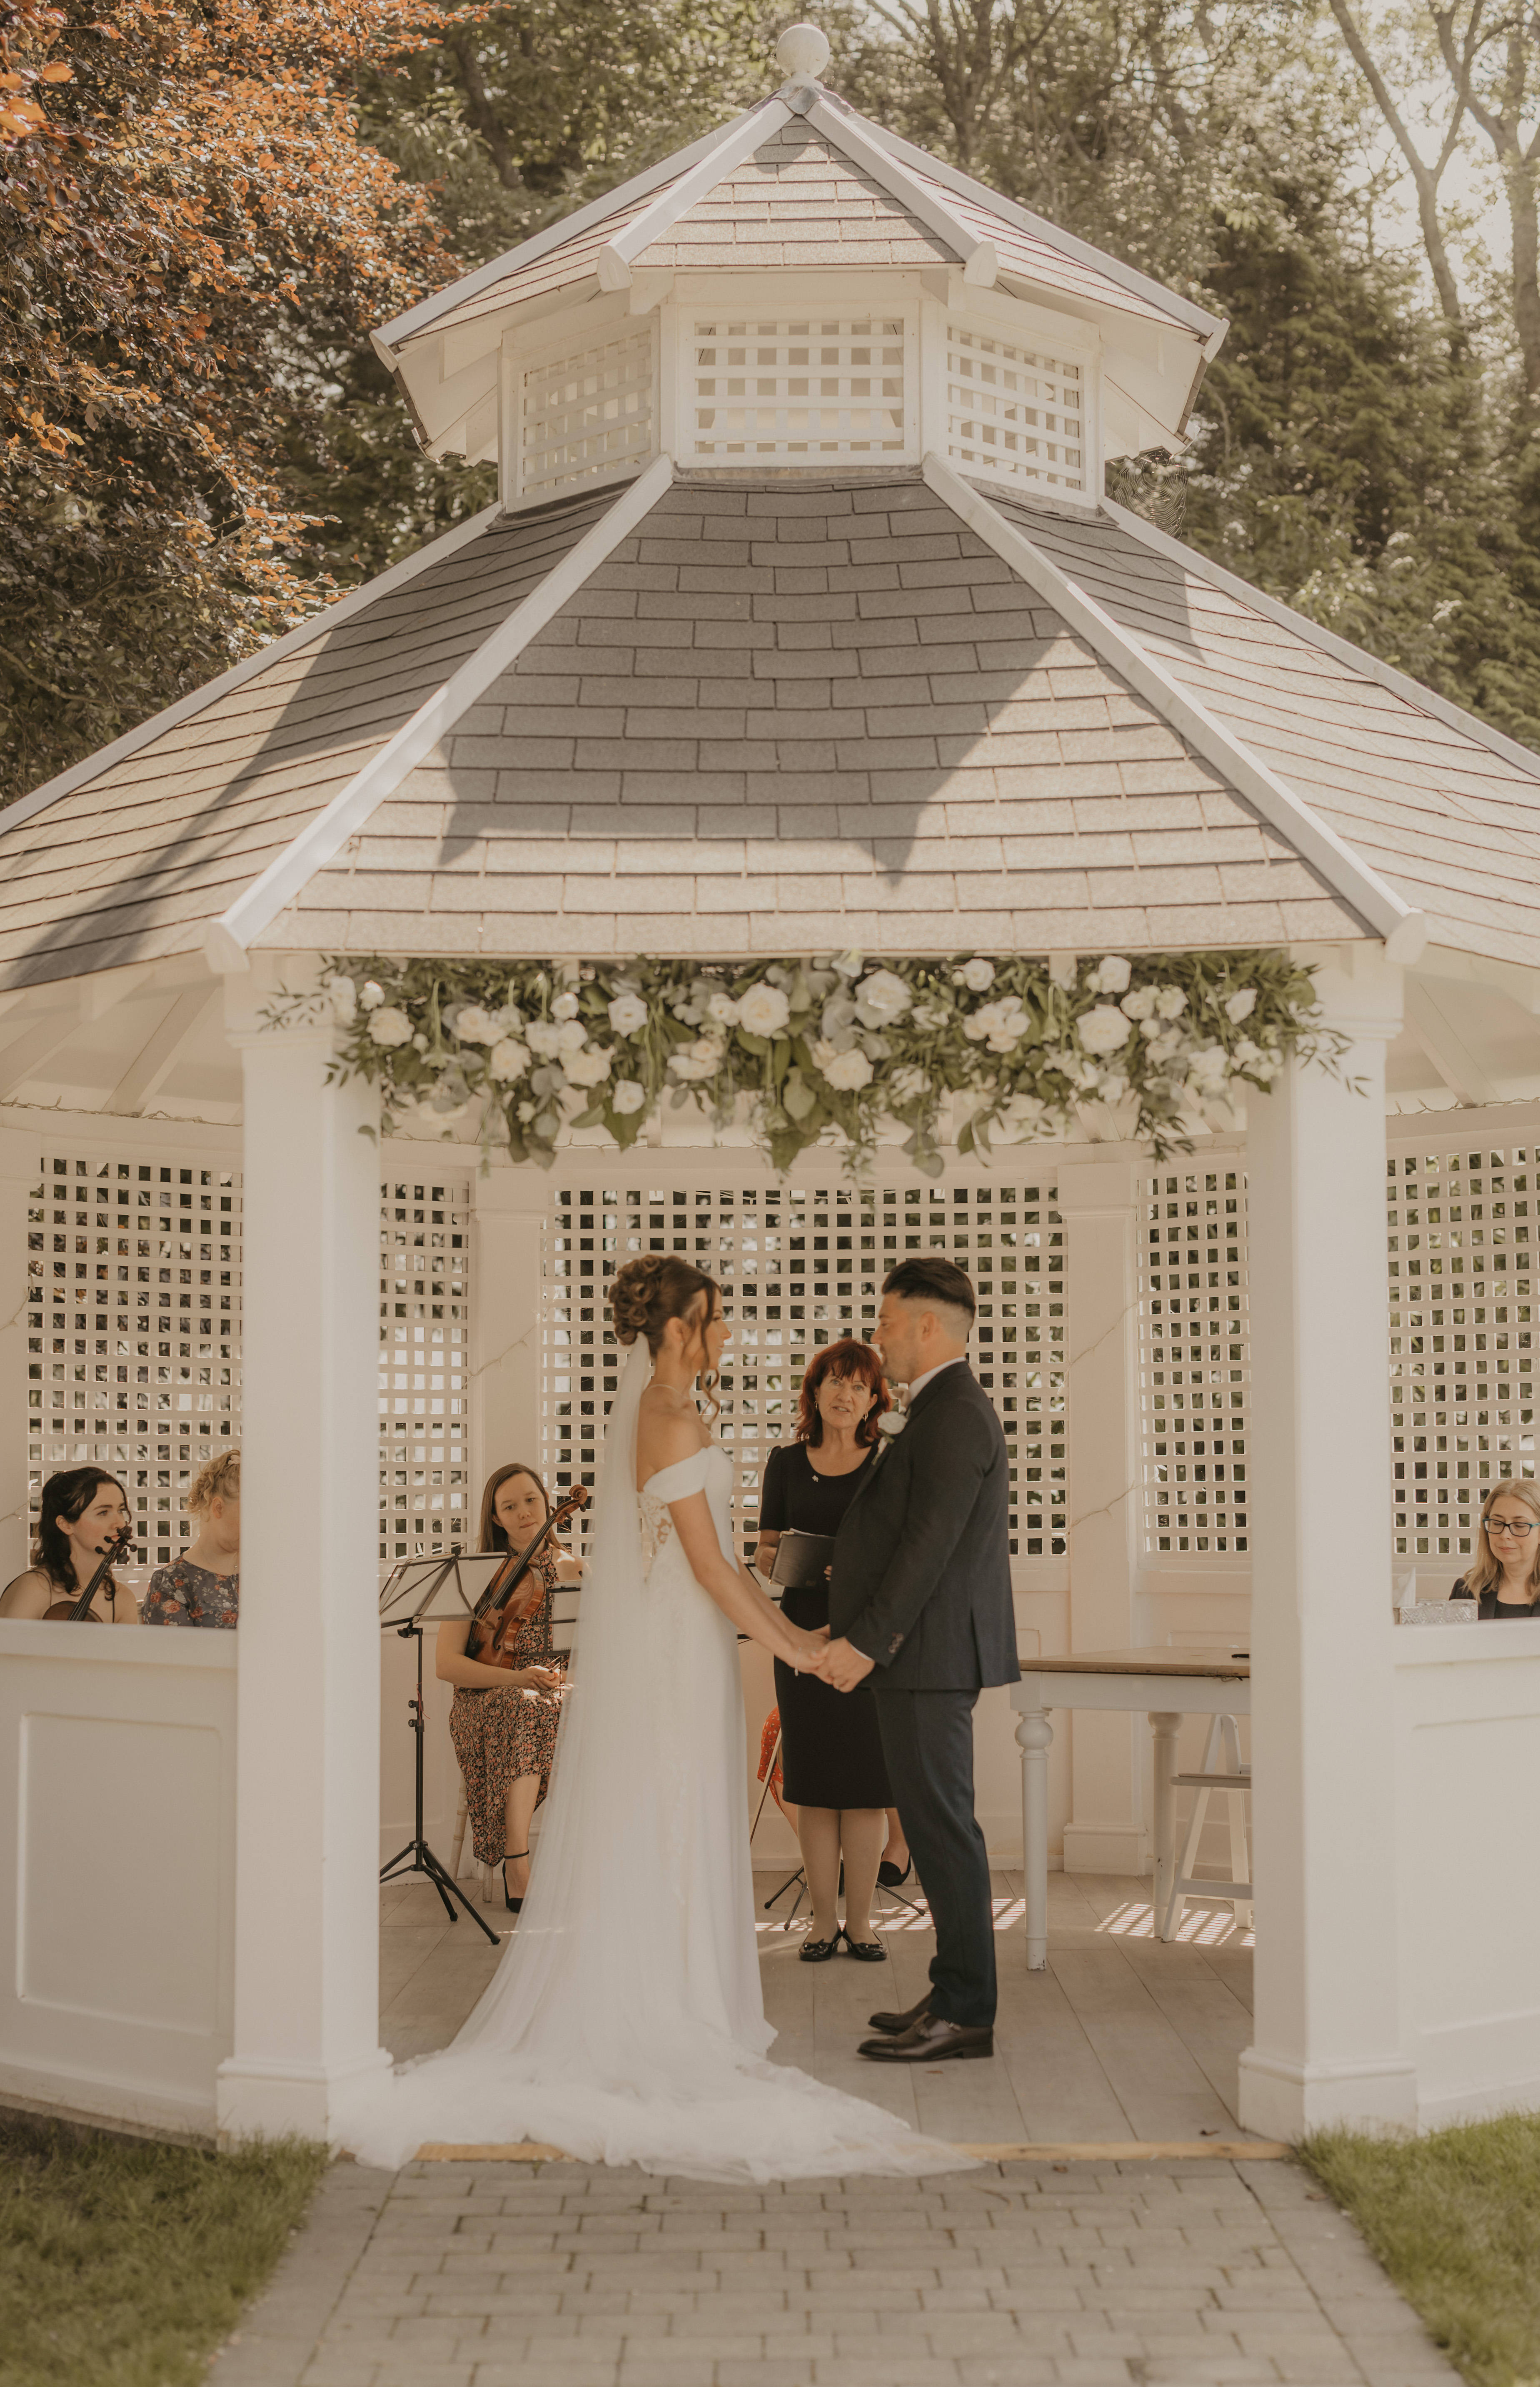 Couple getting married in Pavilion at Hayne House